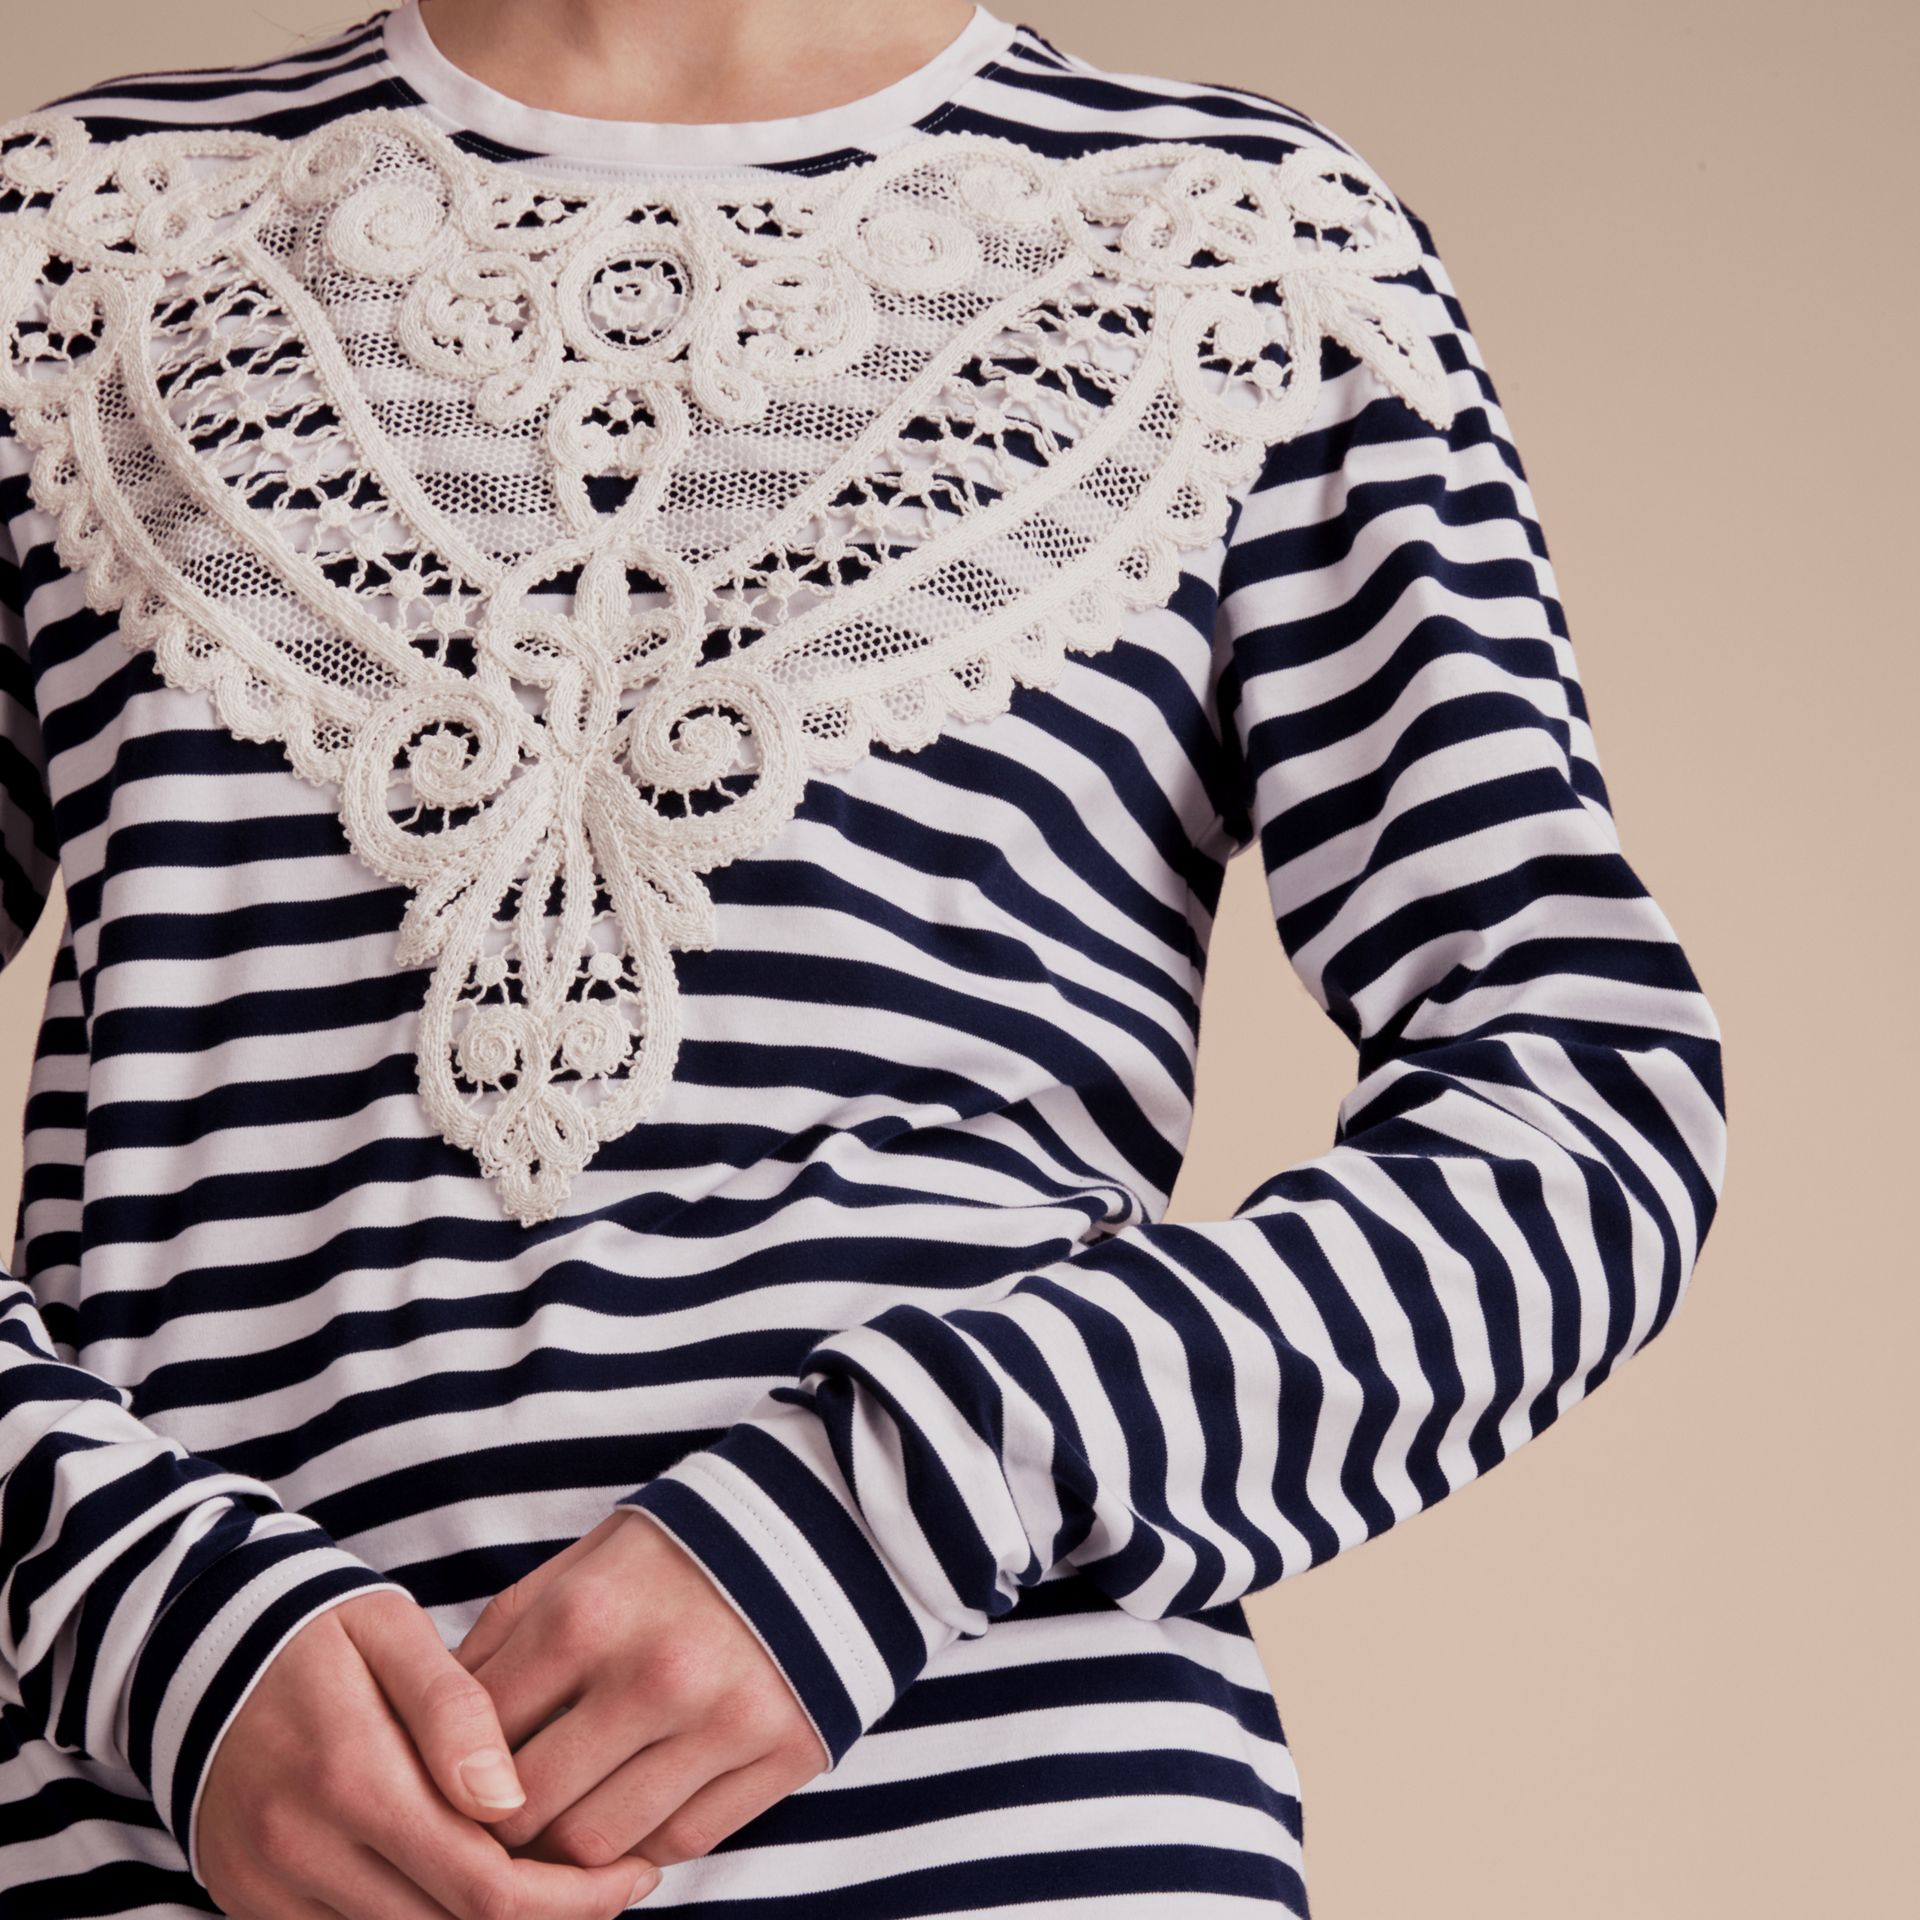 Unisex Lace Appliqué Breton Stripe Cotton Top in Indigo - Women | Burberry - gallery image 5